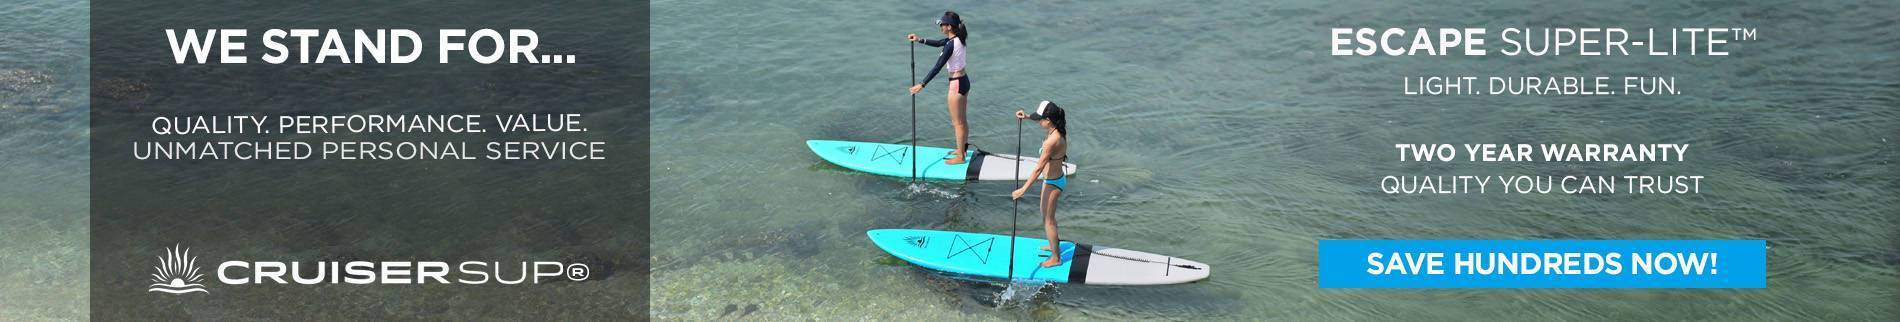 Paddle Board Users Under 140 lbs